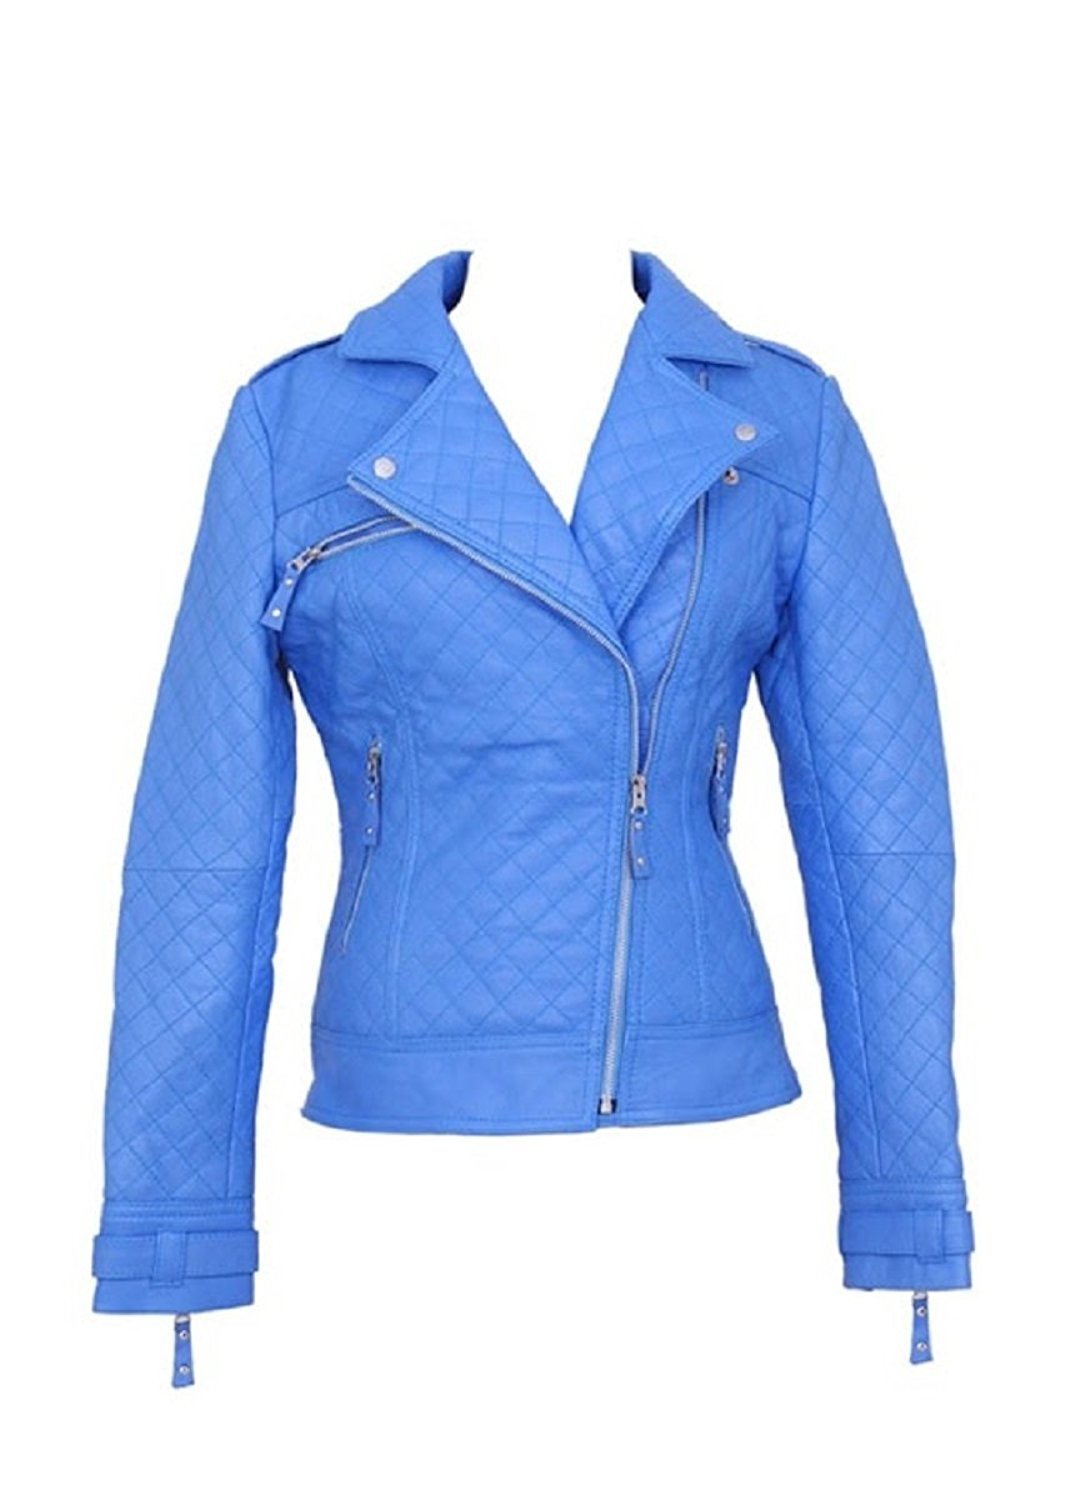 Bestzo Women's Fashion Jacket Lamb Leather Blue L